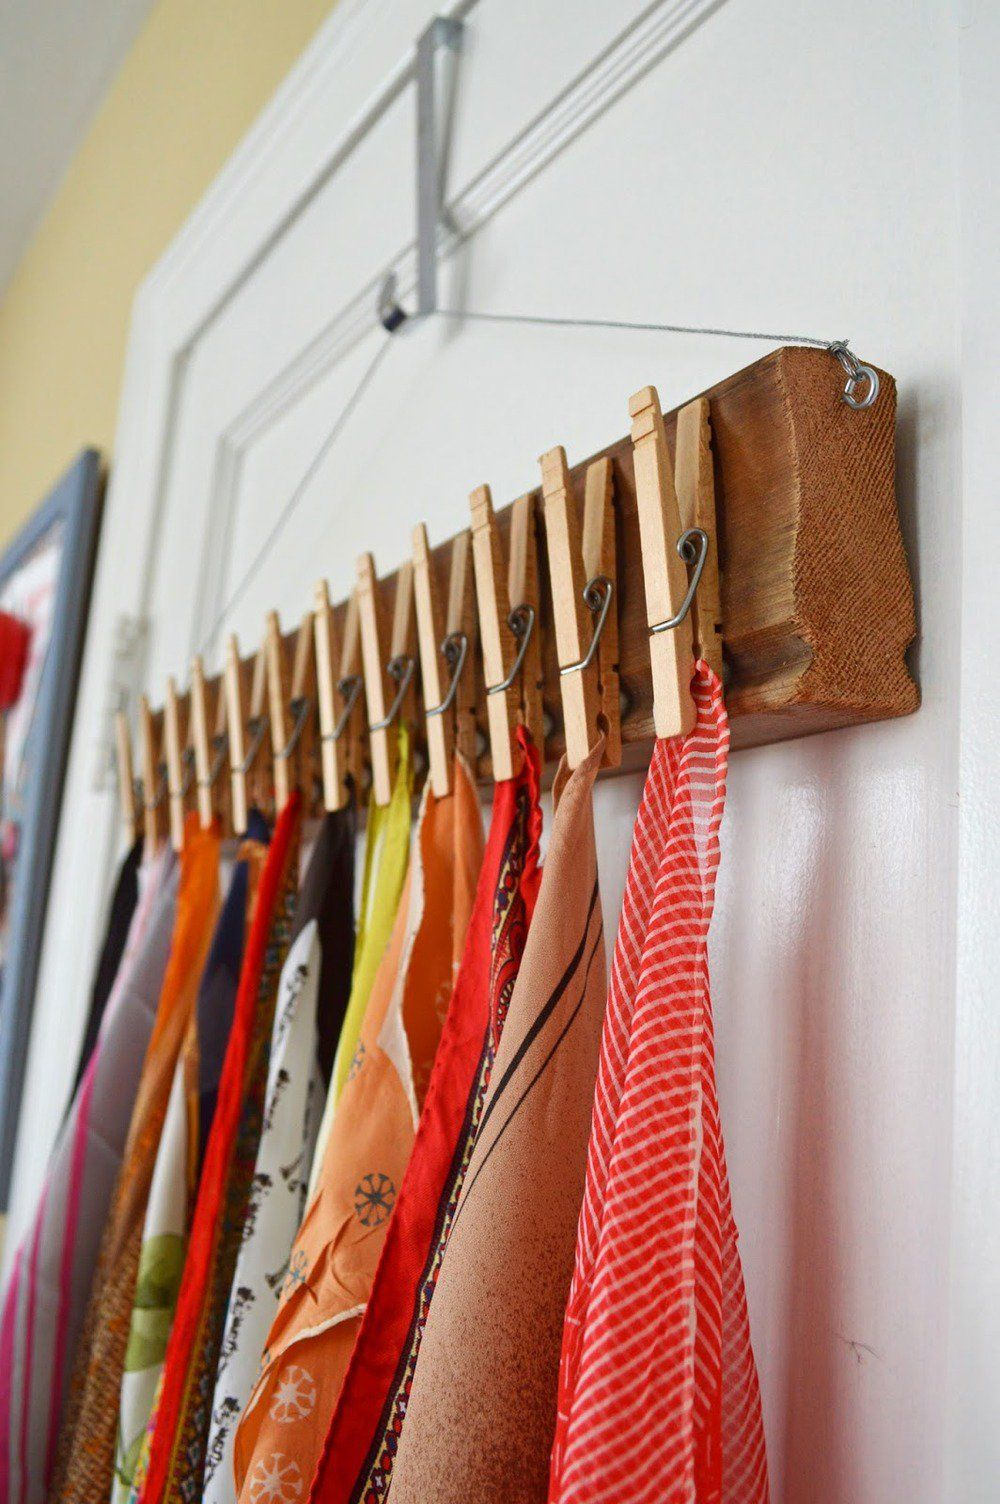 11 Diy Ways To Contain Your Clutter Without Compromising Your